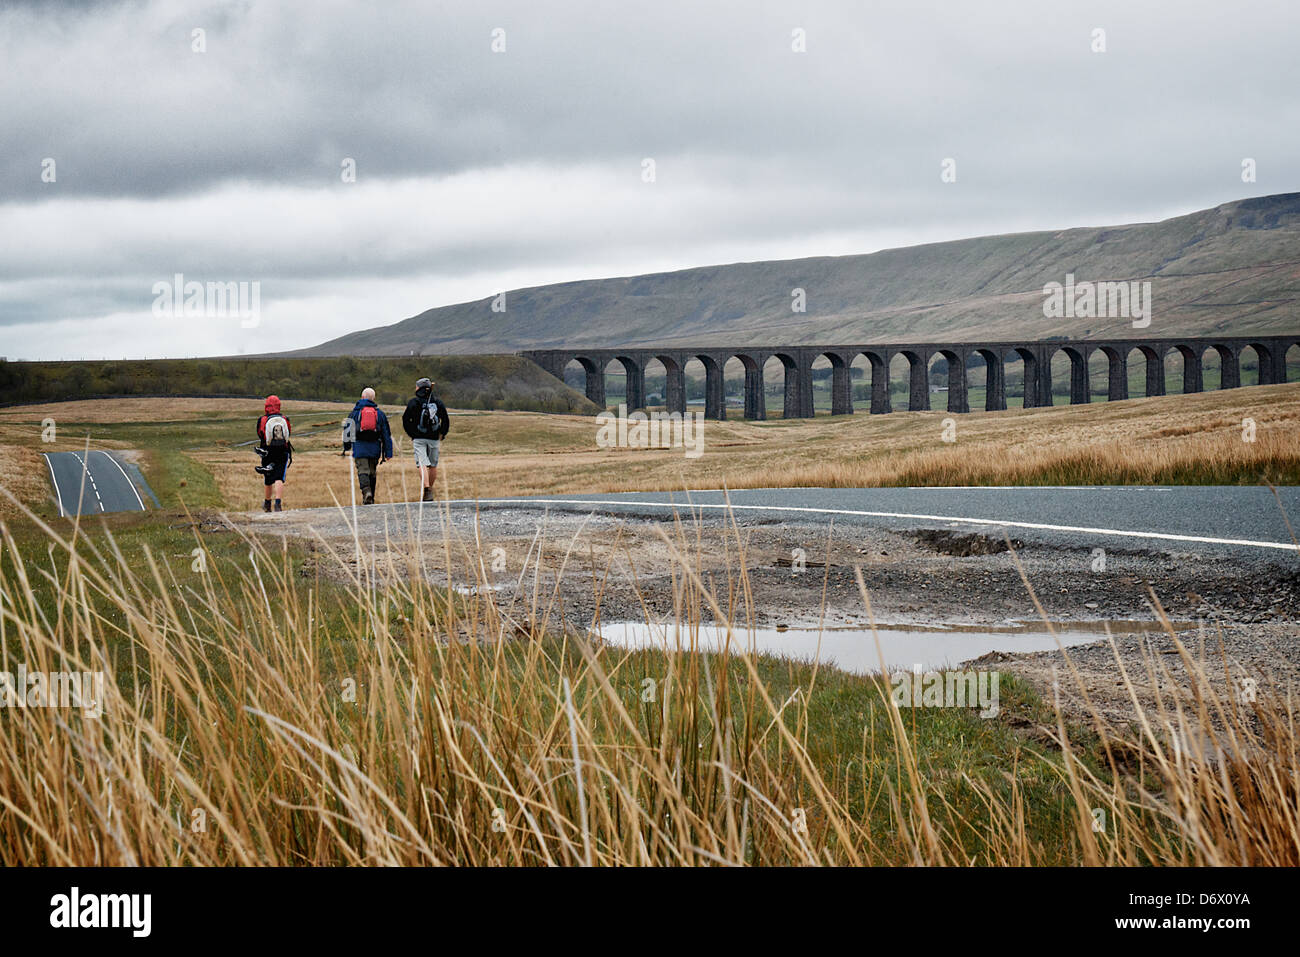 Walkers approaching Whernside and Ribblehead Viaduct walk, North Yorkshire, England. Part of the 3 peaks challenge. - Stock Image